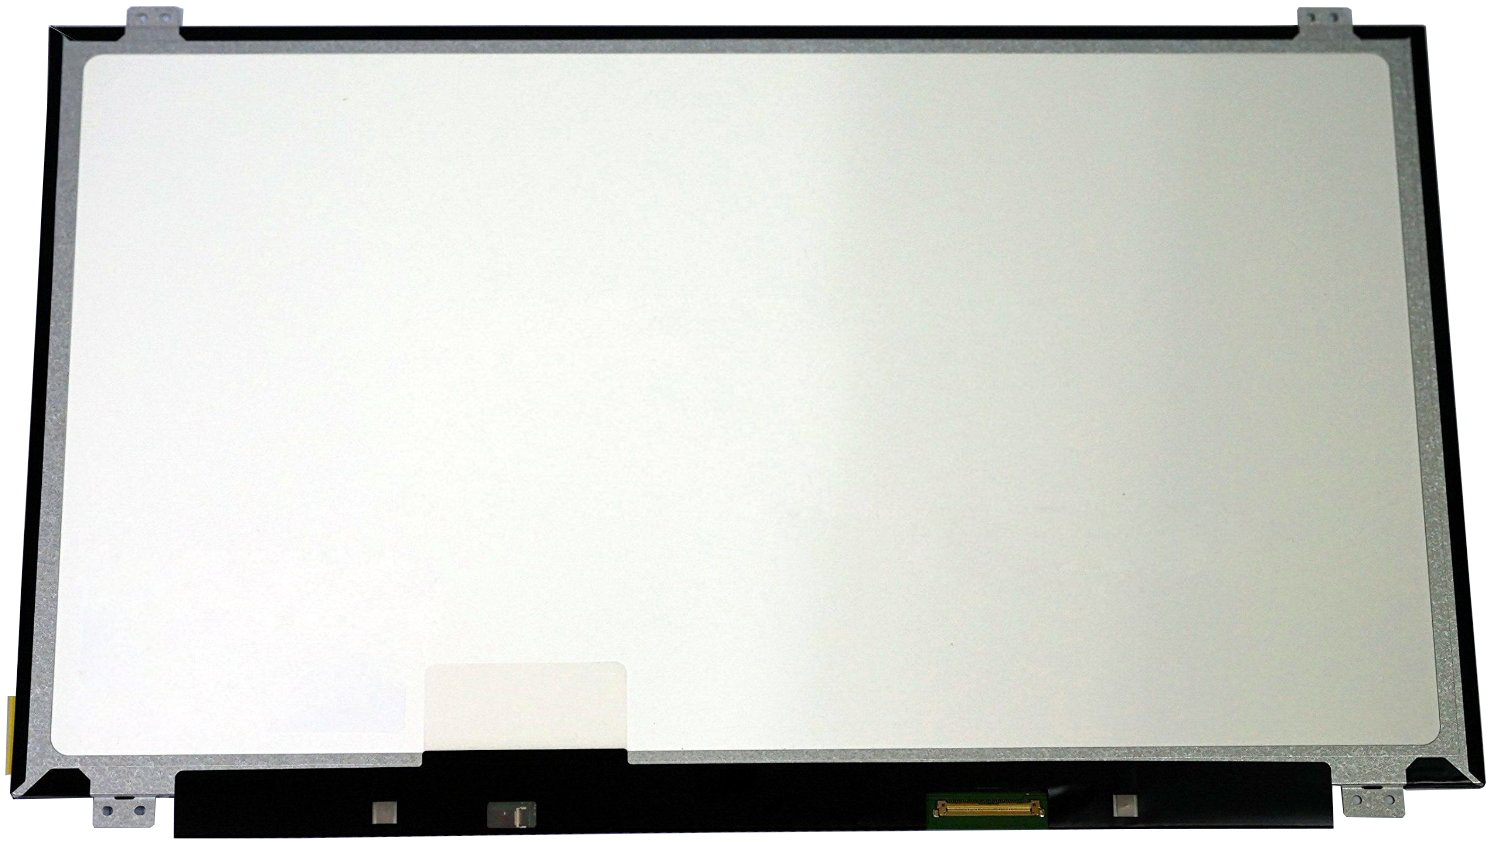 QuYing Laptop LCD Screen for Acer Aspire V5-551G V5-551 V5-531G V5-531 V5-571 V5-571G ZR7 PEW71 (15.6 inch 1366x768 40pin N) original new al12b32 laptop battery for acer aspire one 725 756 v5 171 b113 b113m al12x32 al12a31 al12b31 al12b32 2500mah